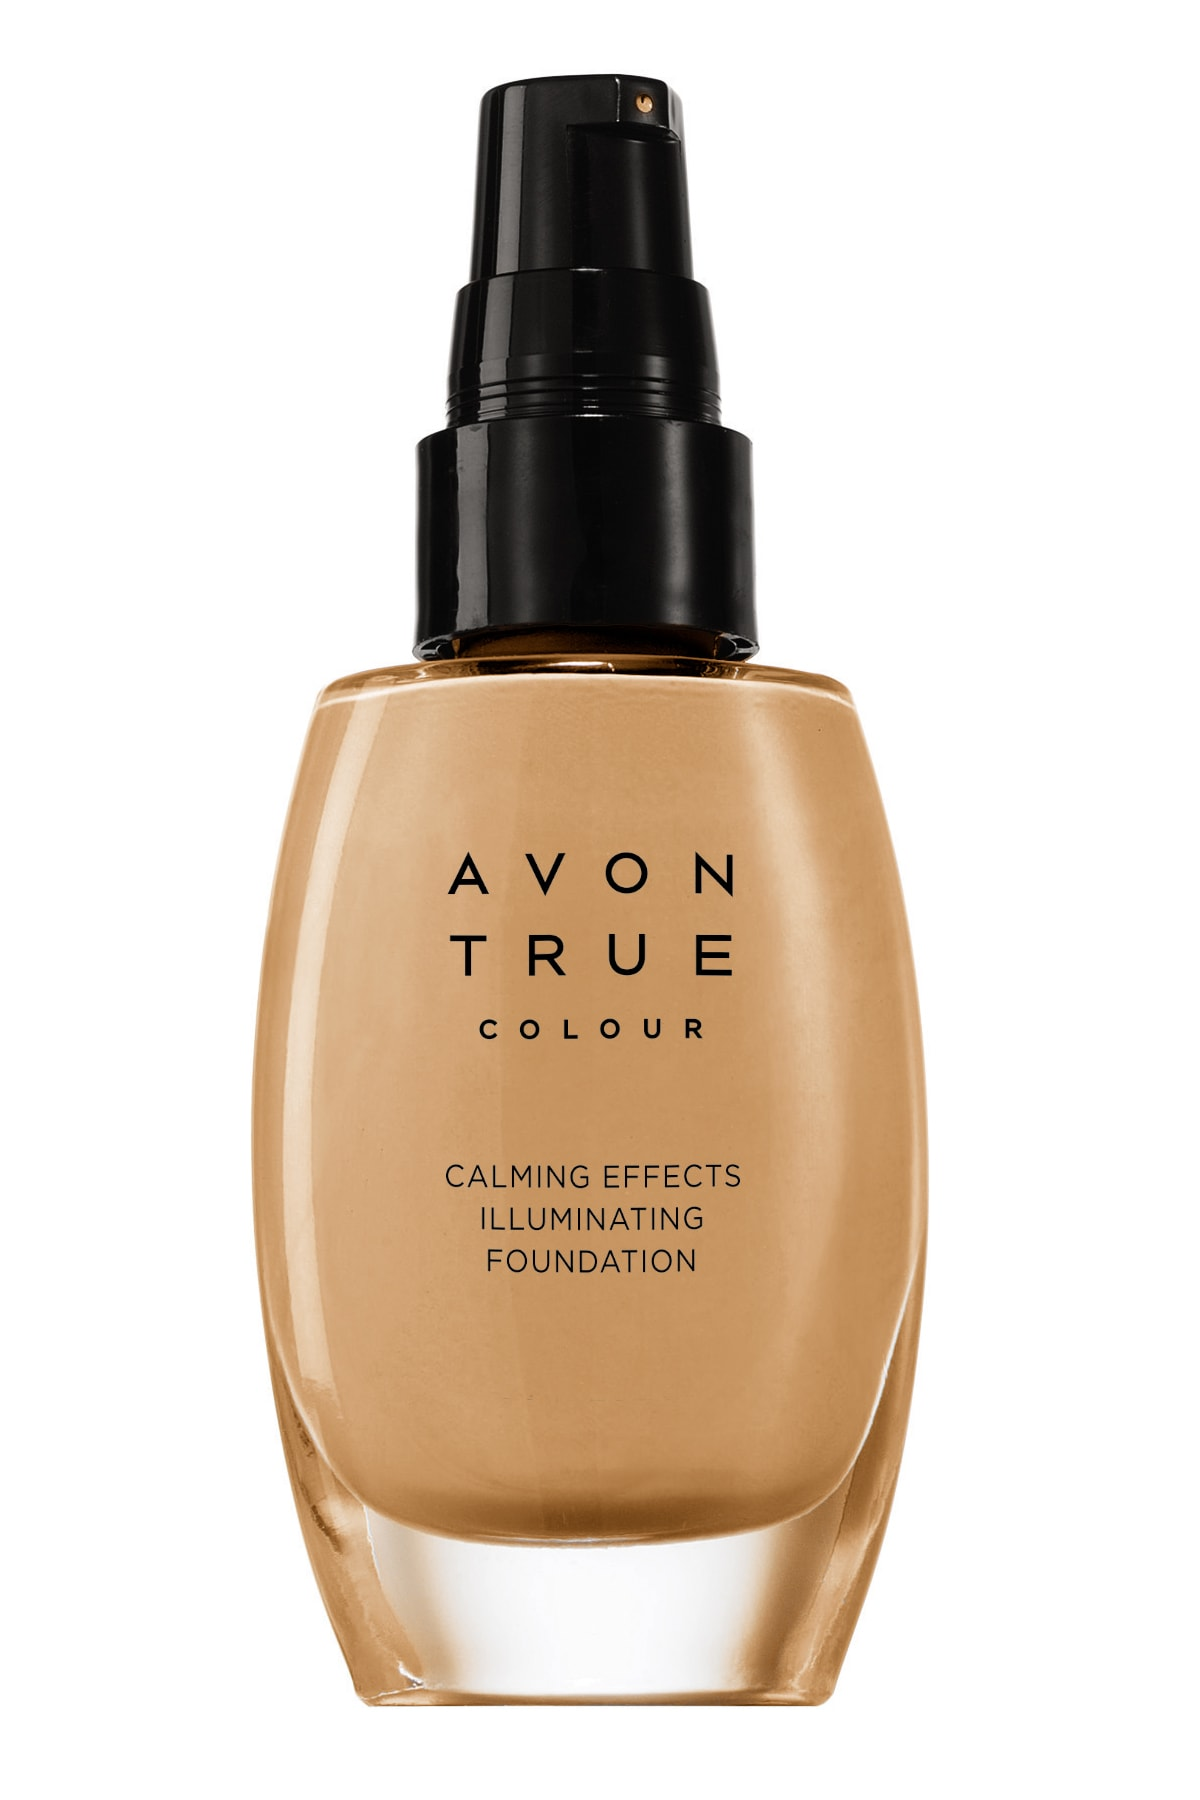 AVON Işıltı Veren Fondöten - Calming Effects Illuminating Foundation Cream 30 ml 8681298930297 1